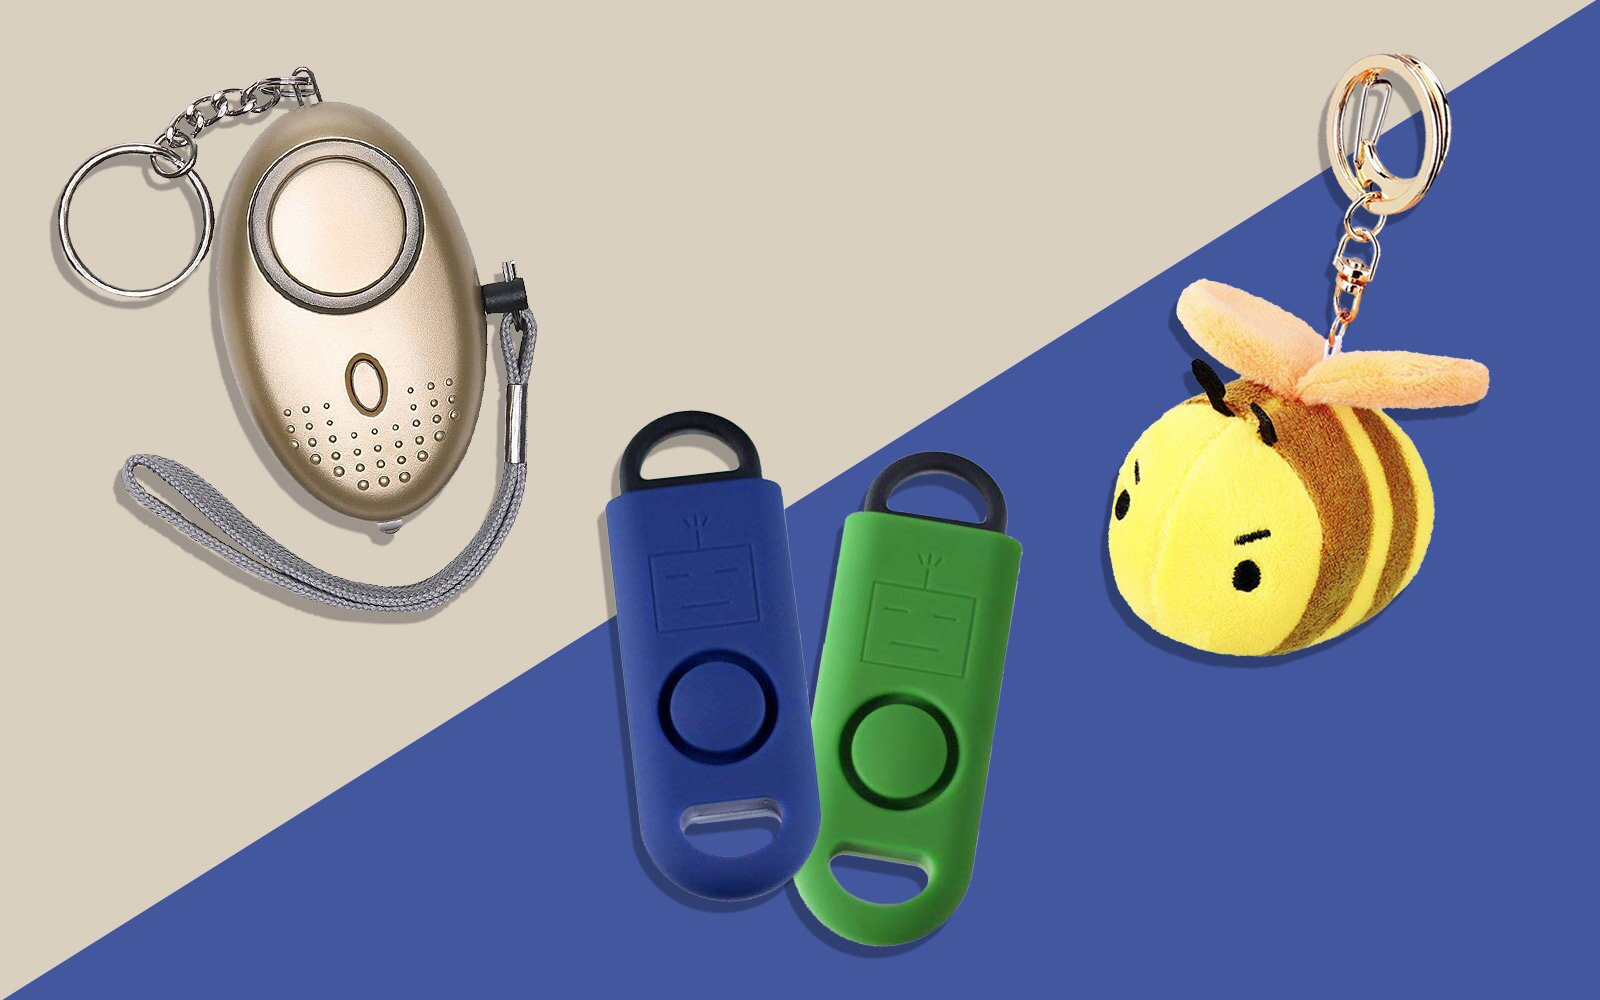 60a177222909cc The Best Personal Safety Alarms for Travel Emergencies | Travel + ...